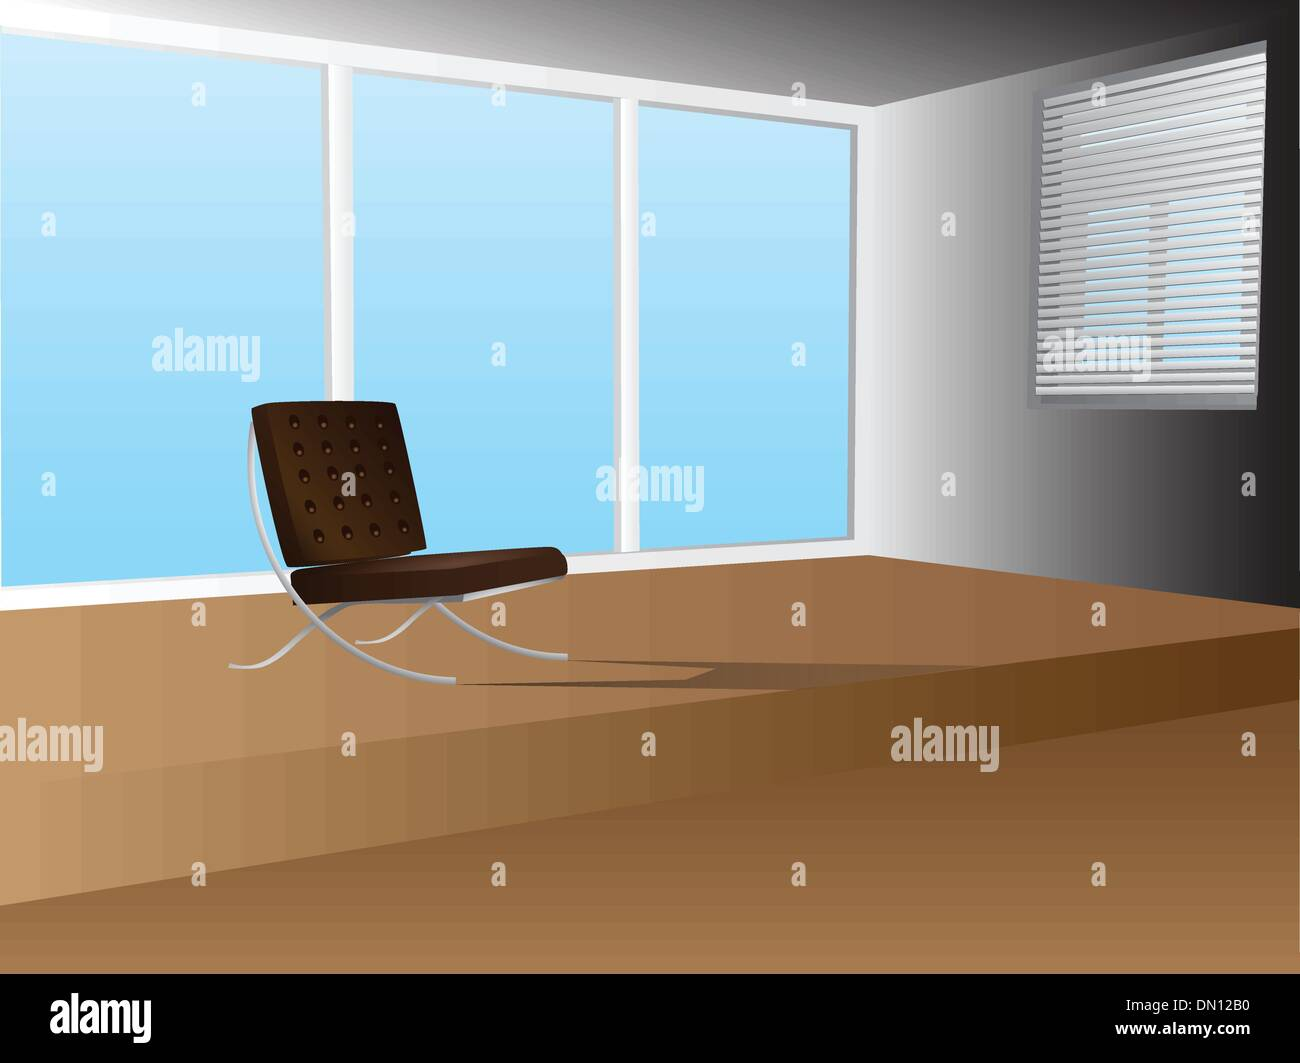 Office interior with armchair - Stock Vector